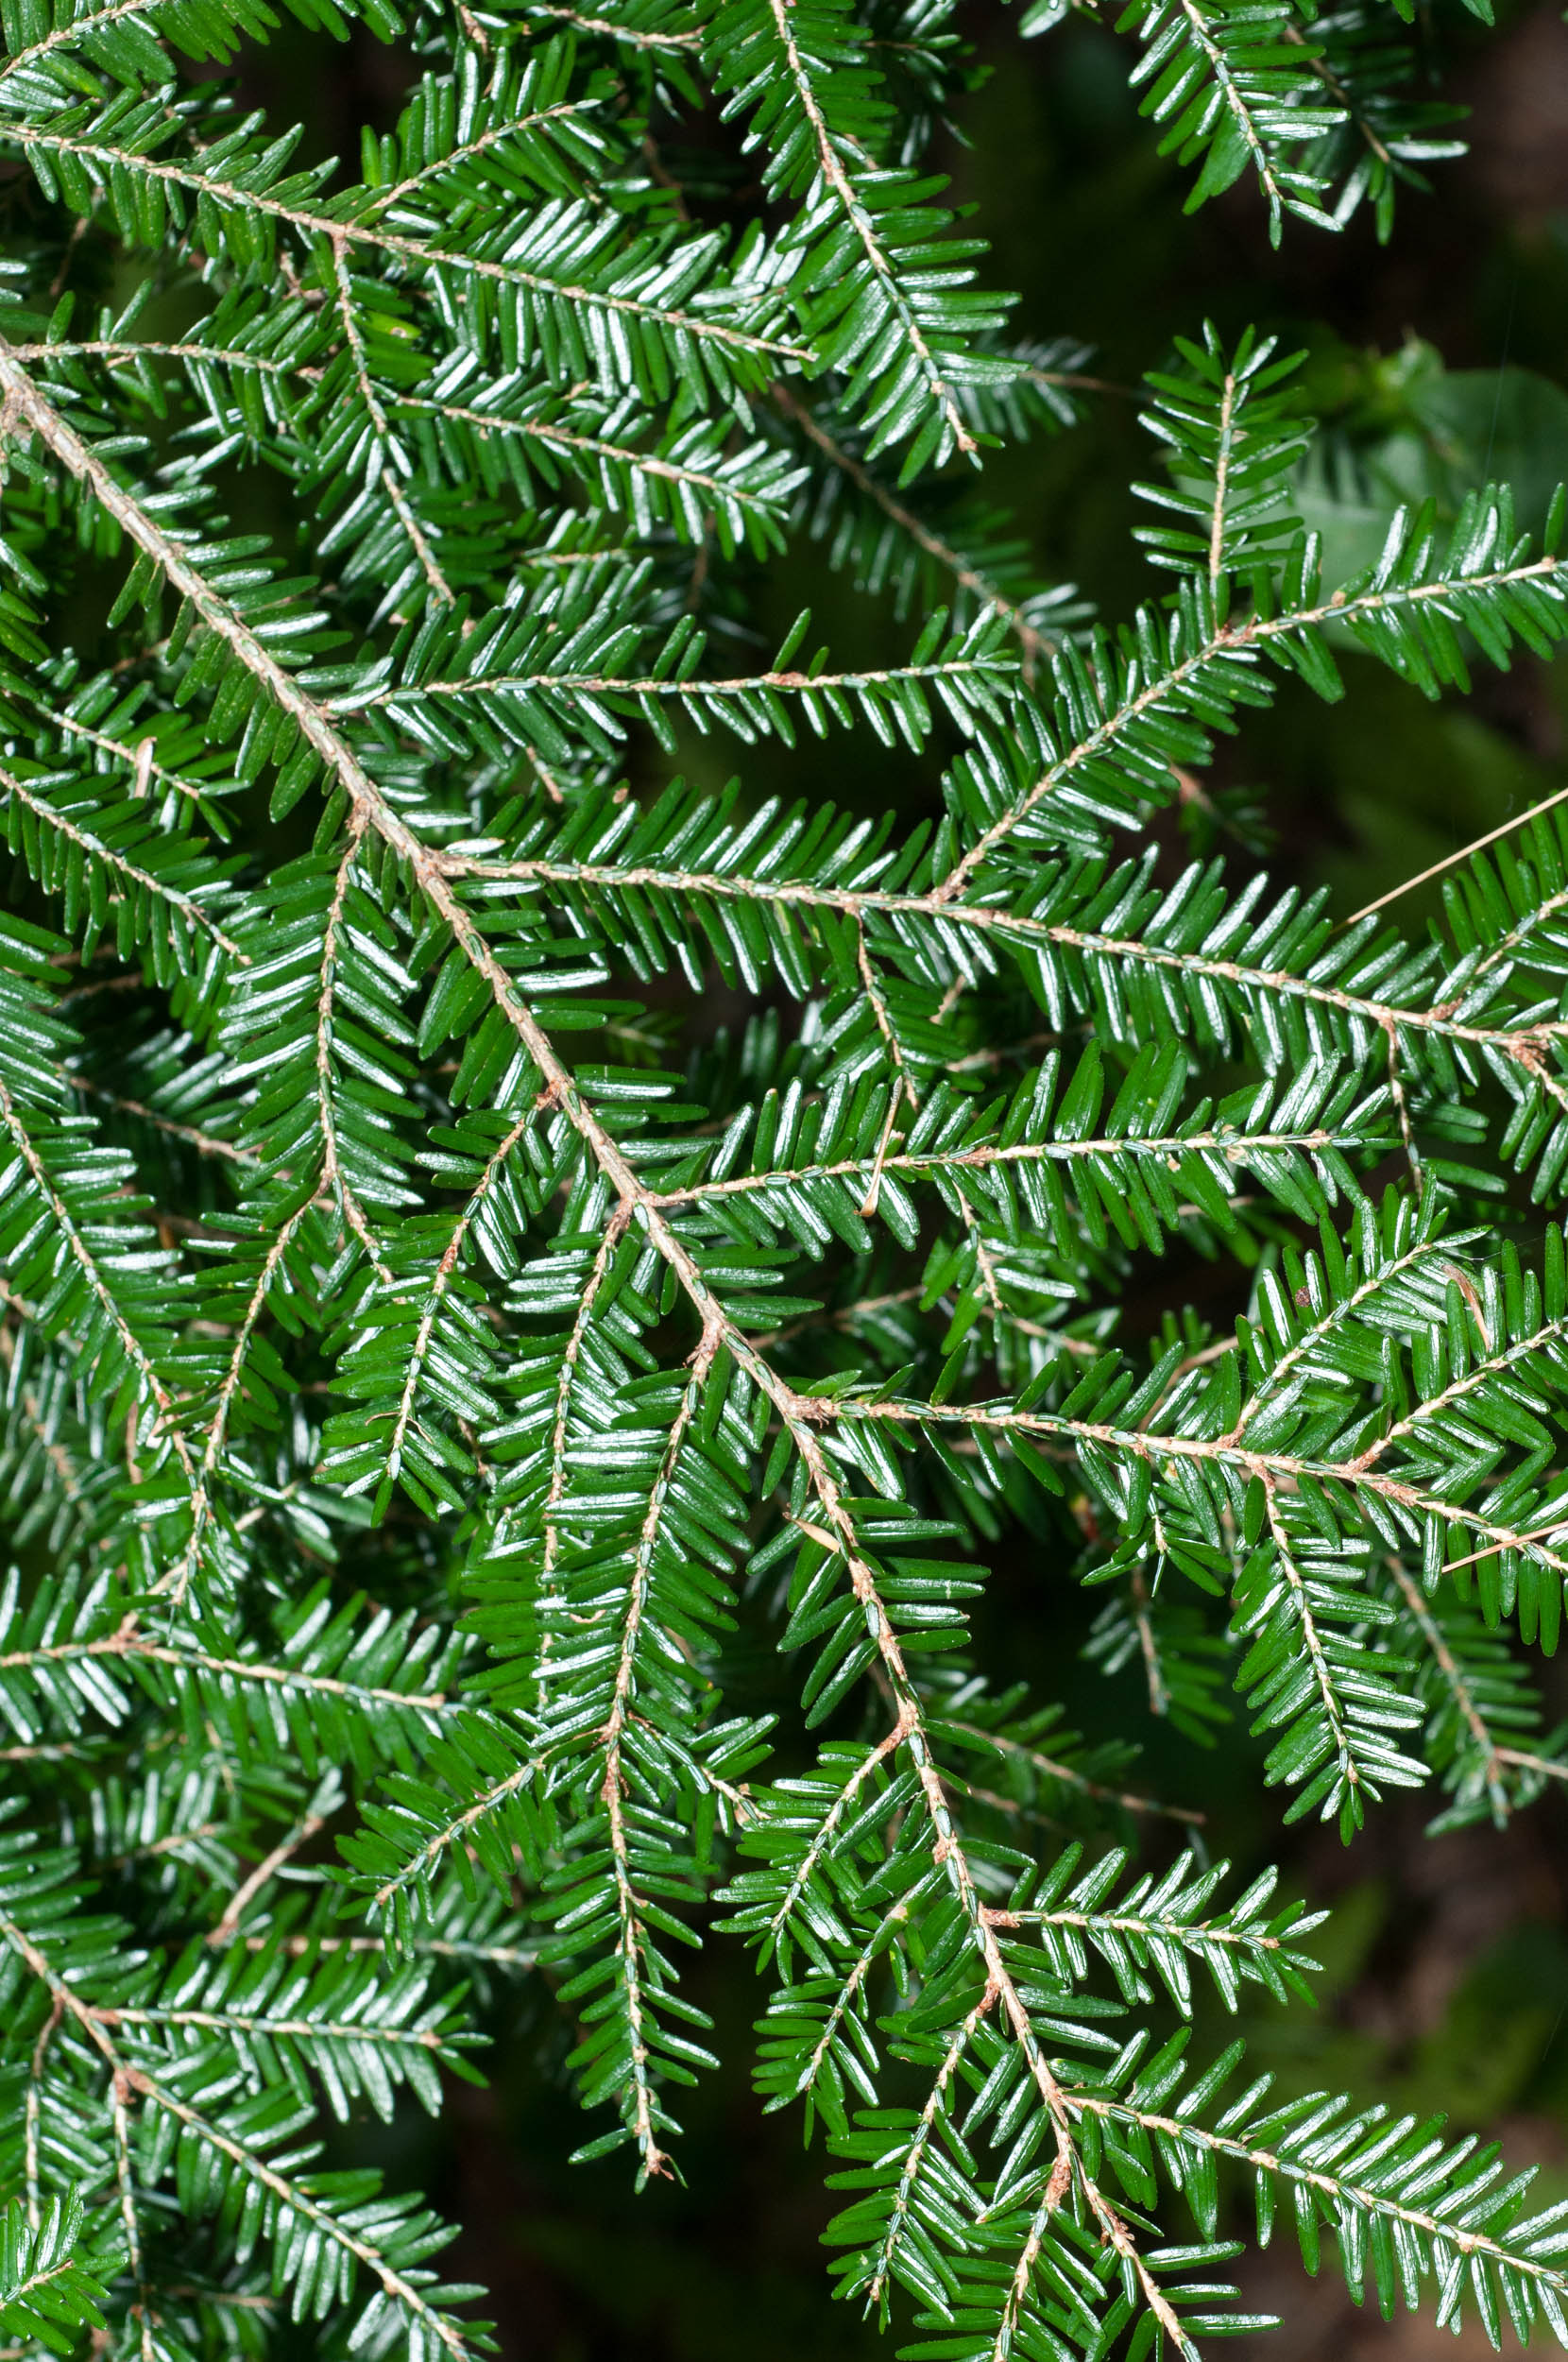 About the Hemlock Restoration Initiative